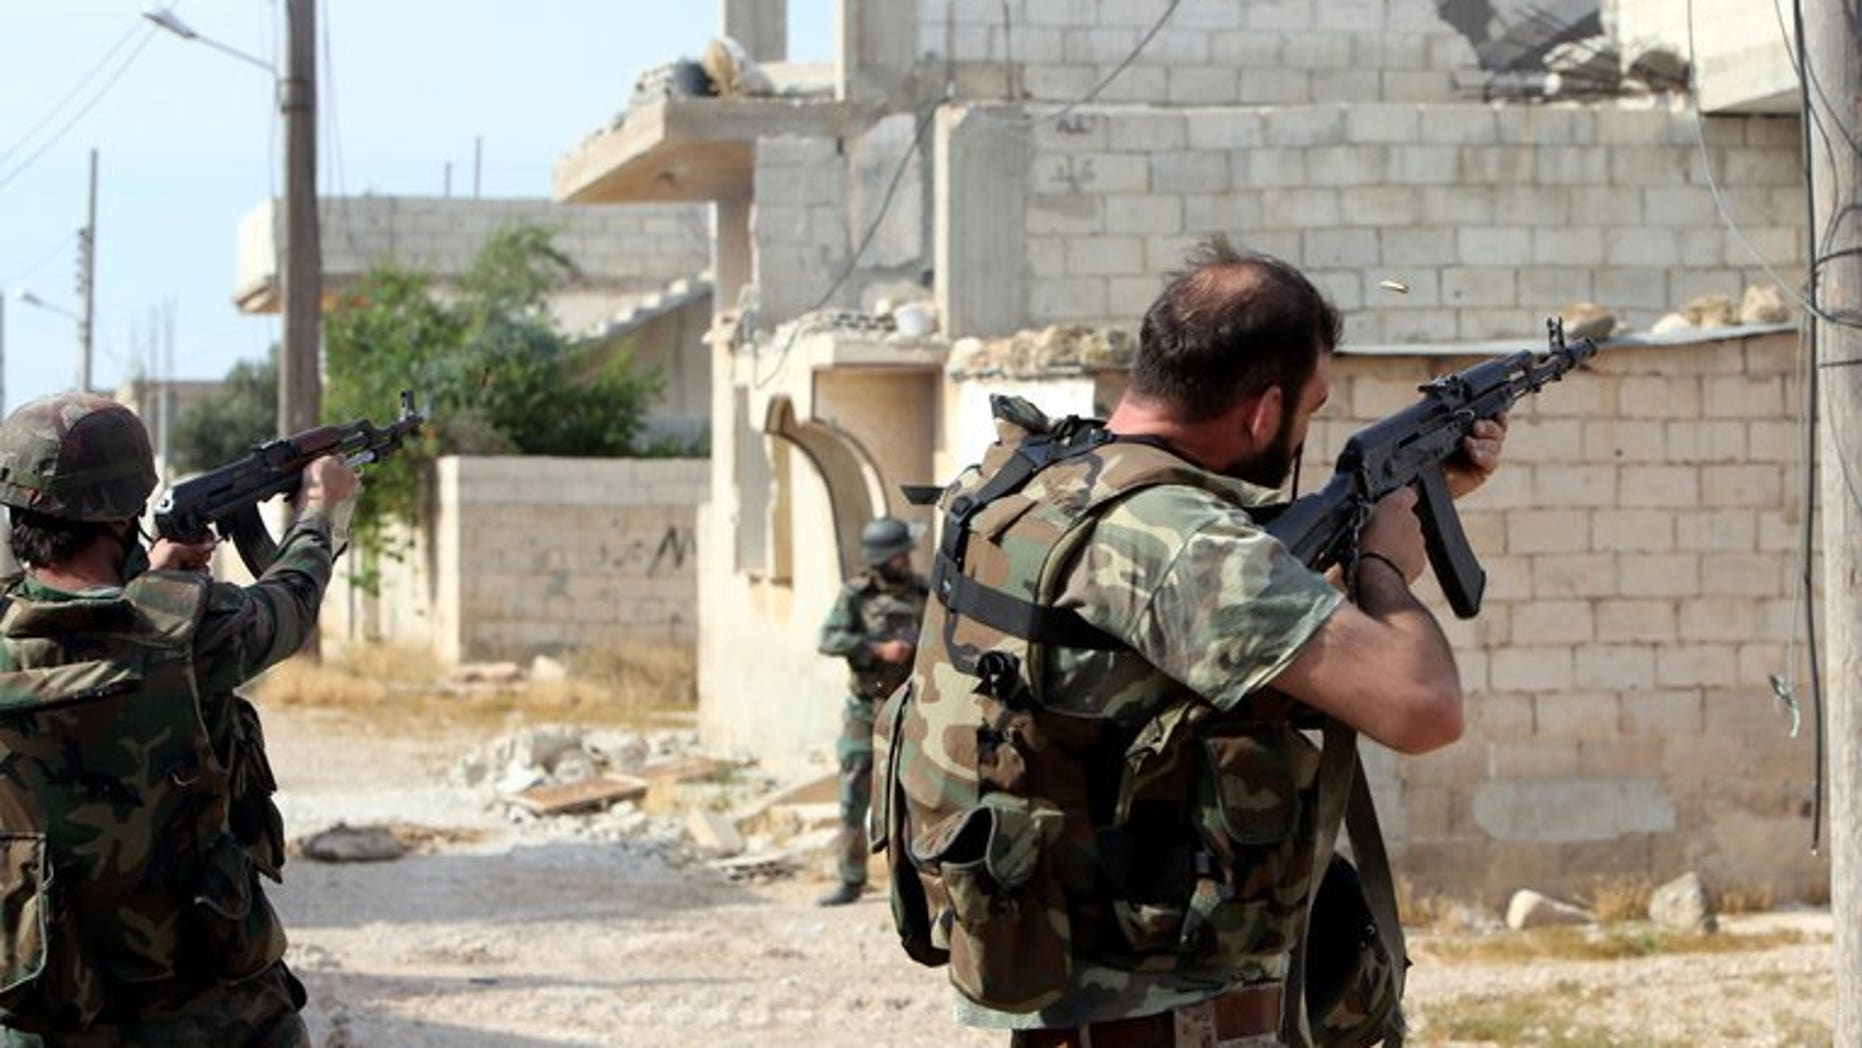 Syrian soldiers fire their weapons during a battle against opposition fighters in Qusayr, on May 23, 2013. A Syrian pro-regime militia shot dead 13 members of the same family, including six children, in the Mediterranean coastal village of Bayda, according to the Syrian Observatory for Human Rights.